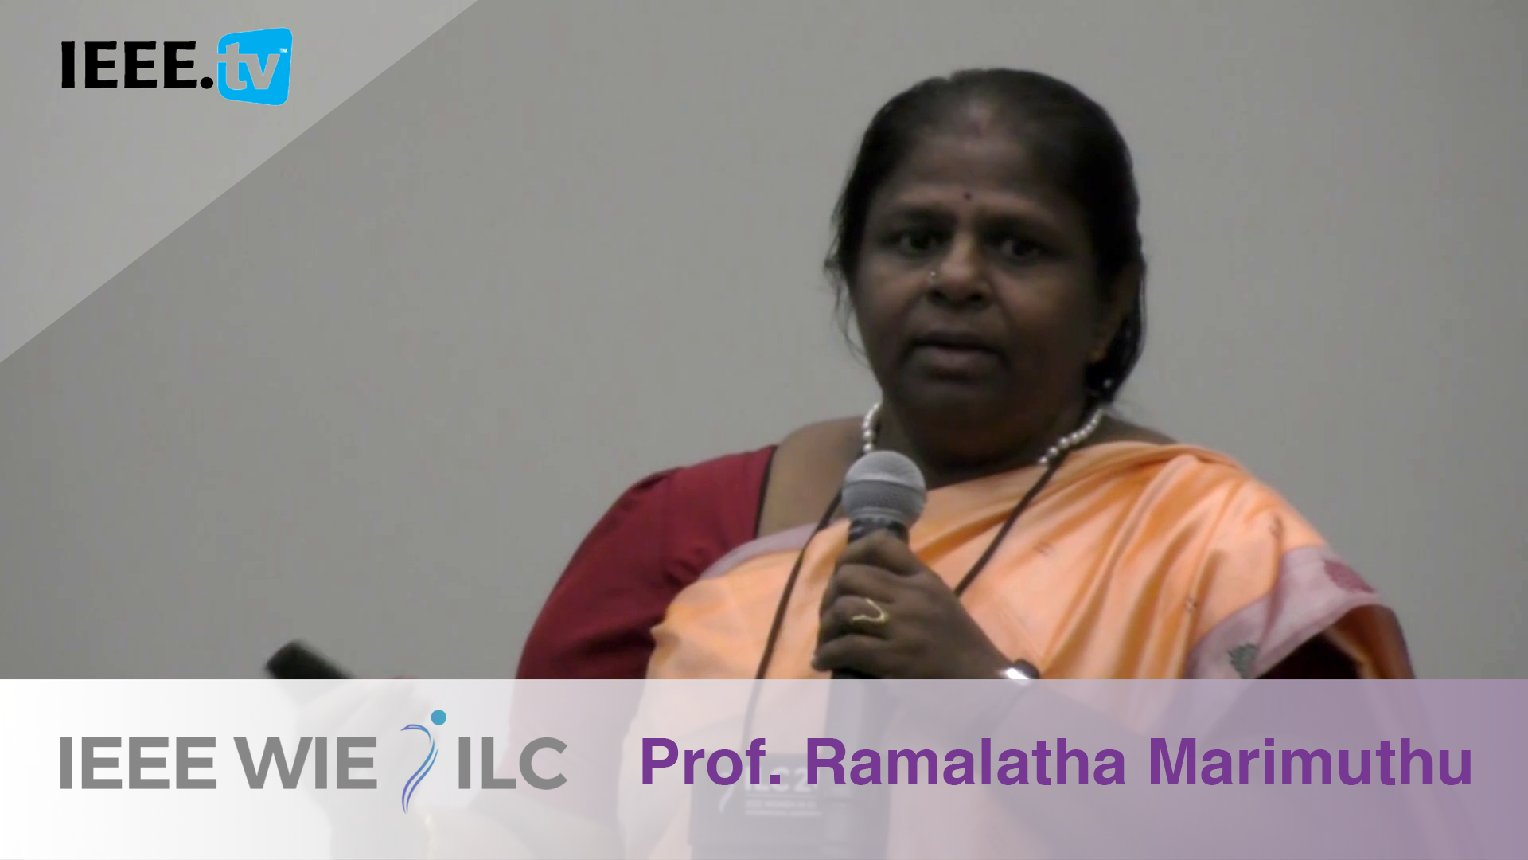 Ramalatha Marimuthu: Inspiring WIE Member of the Year Winner - IEEE WIE ILC Awards 2017